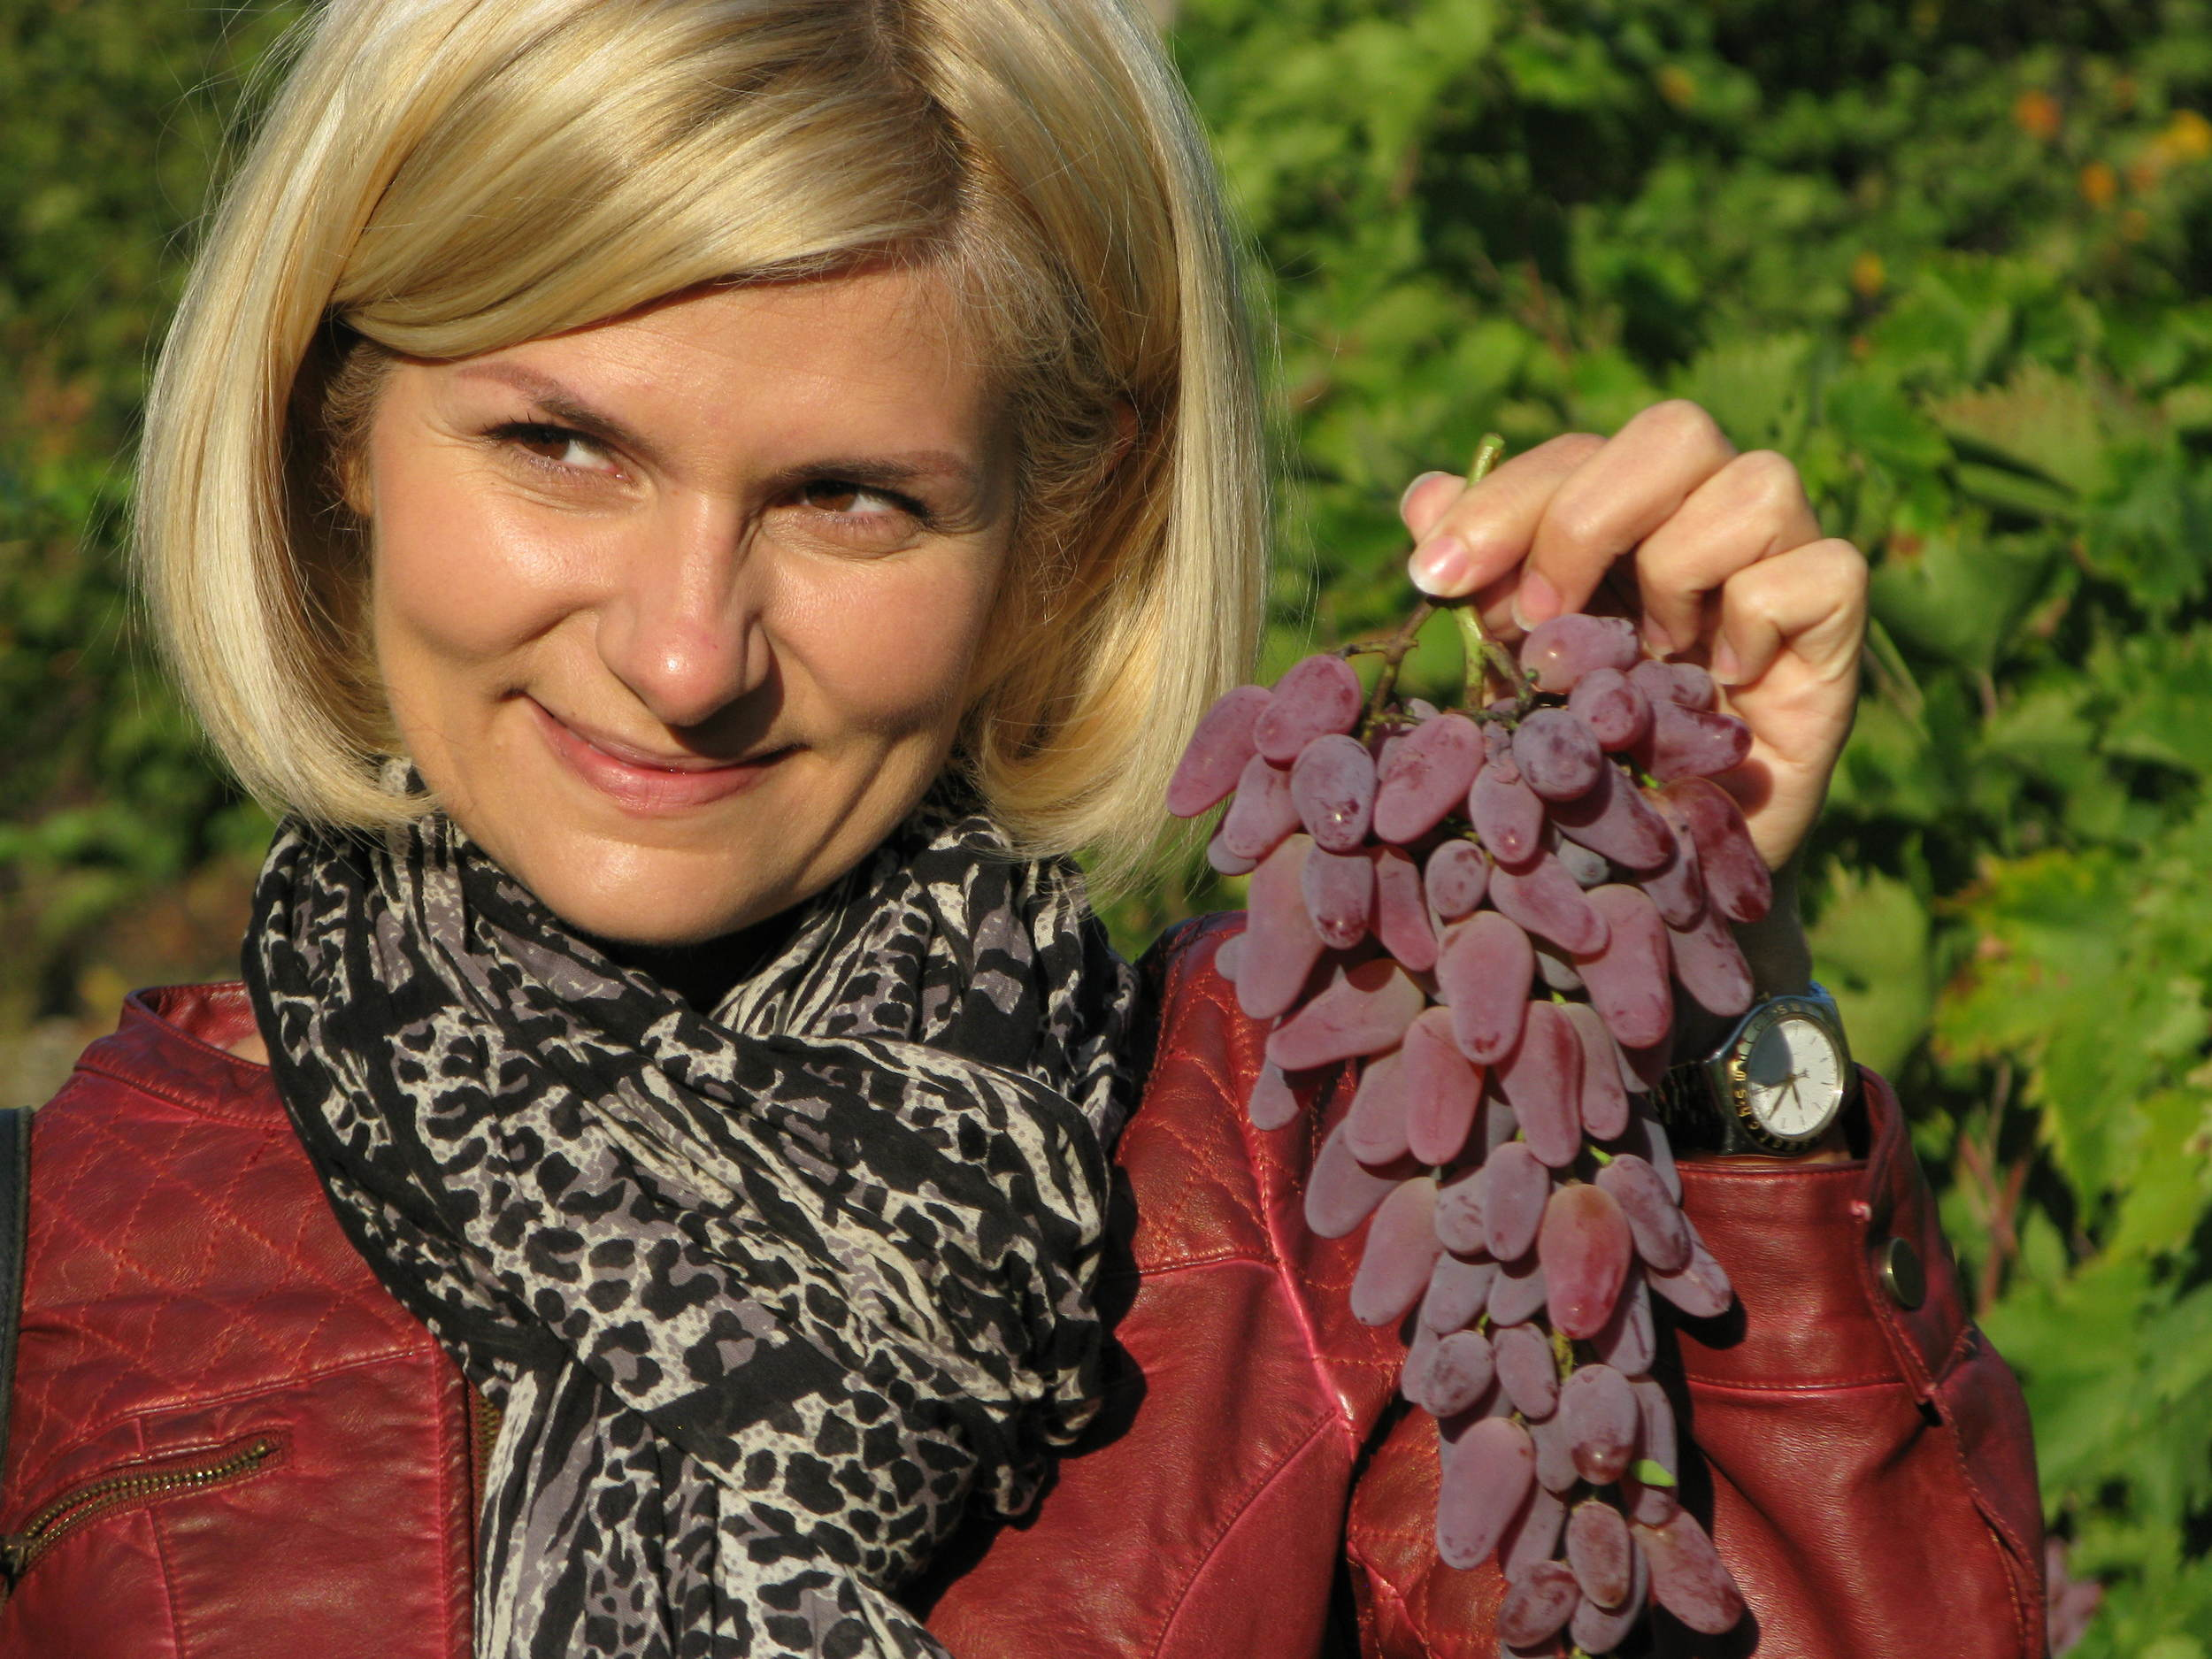 Natalia Shows Off the Strange Shape of the Grapes for the Homemade Wine